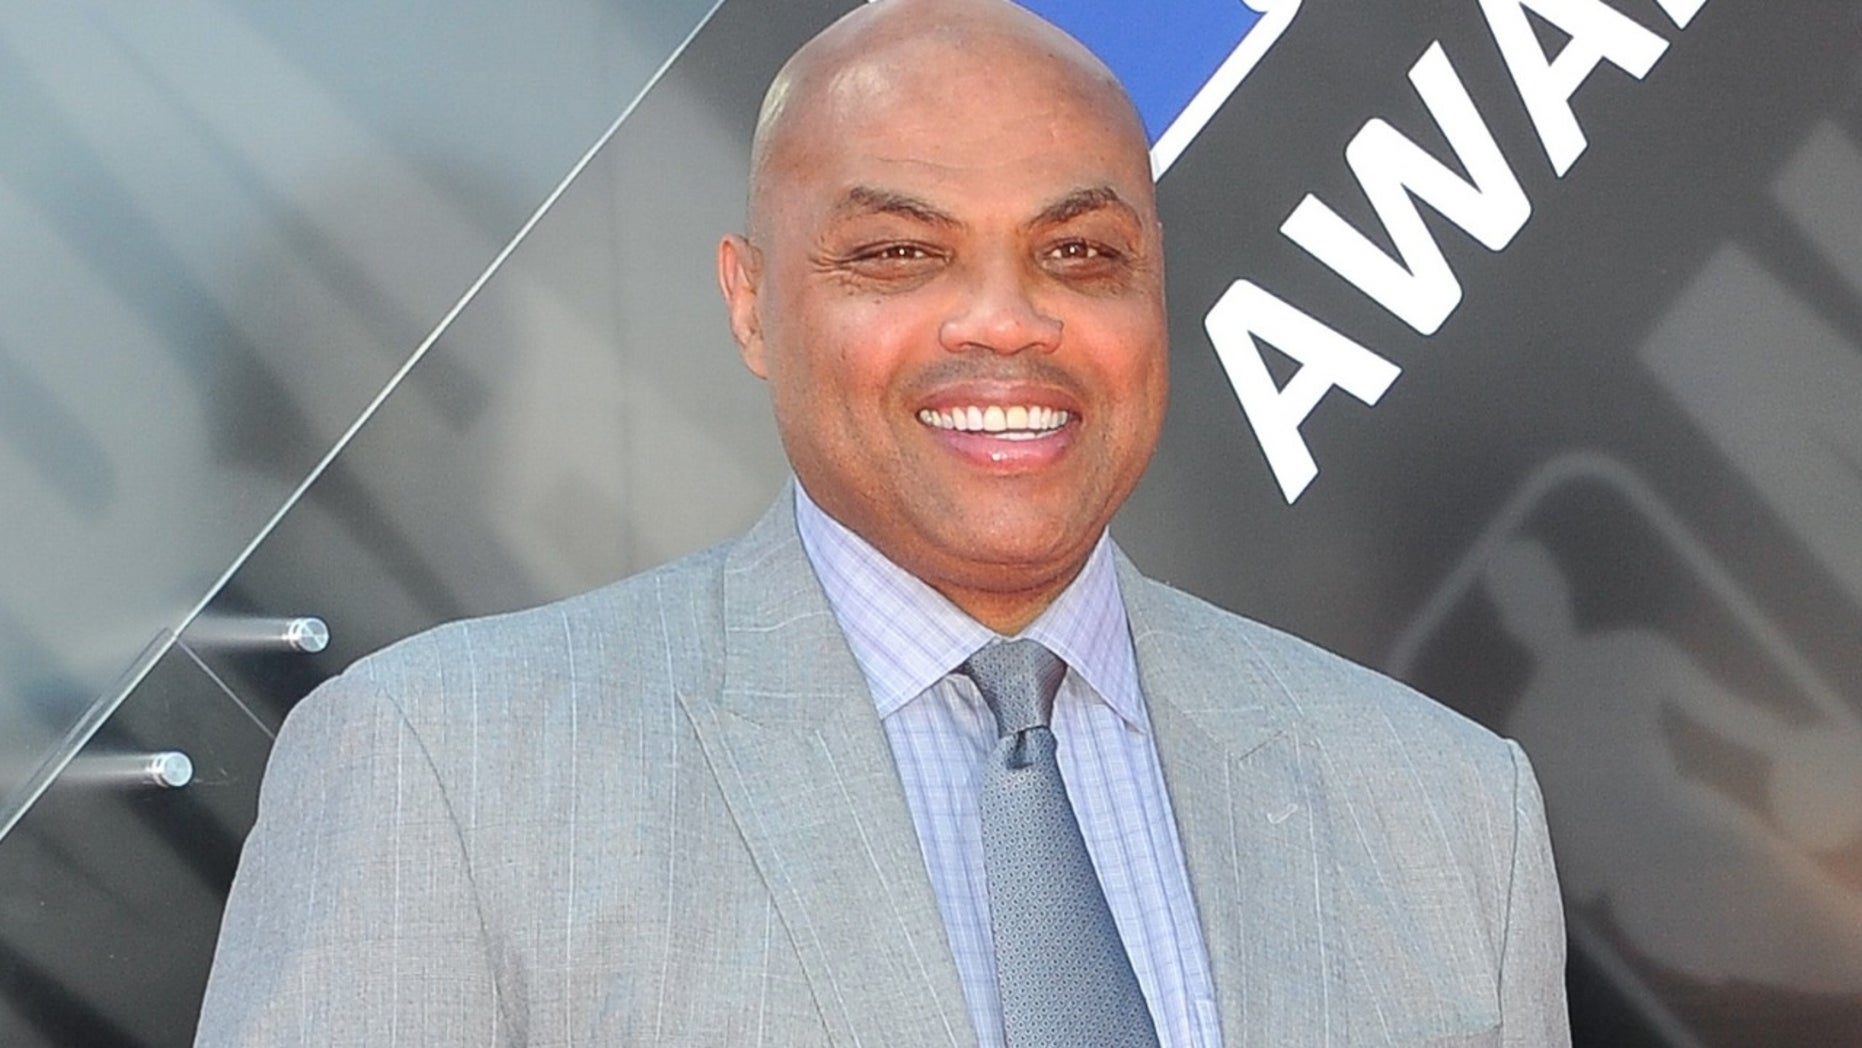 Everyone is getting emotional over this touching Charles Barkley story